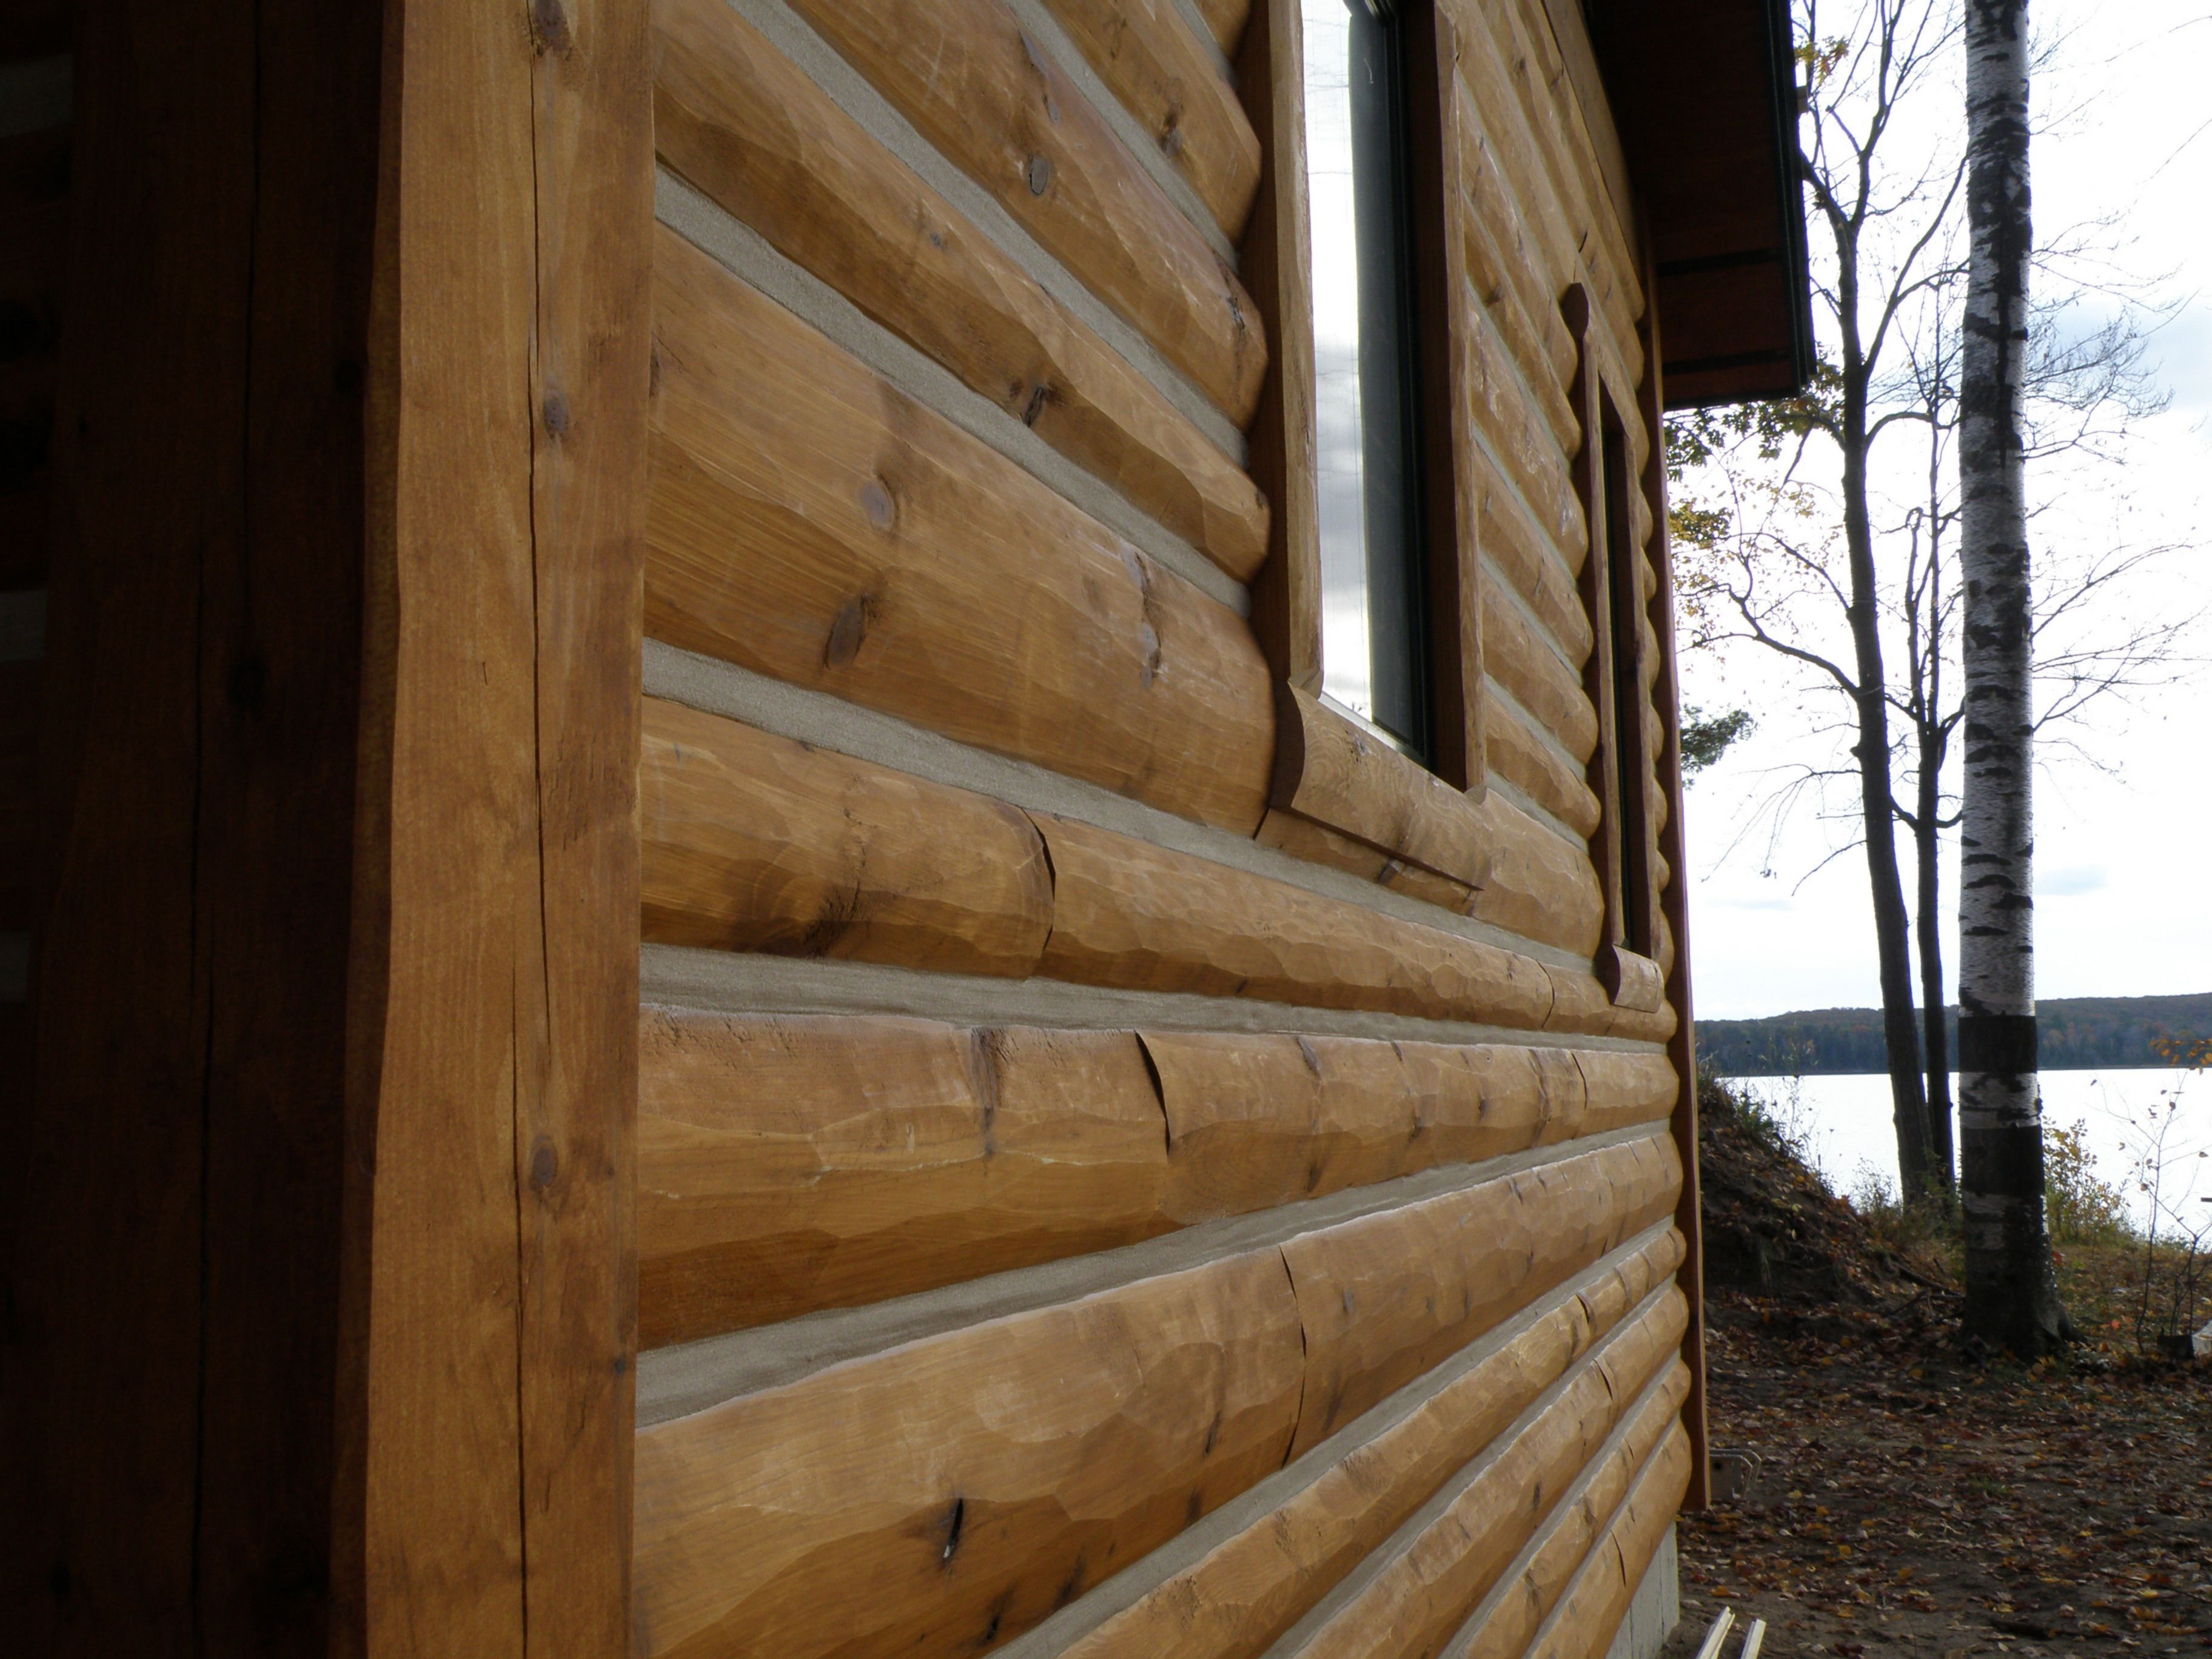 3x8 log siding hand hewn pine - Mixed Width Half Log Siding With Chinking Strip